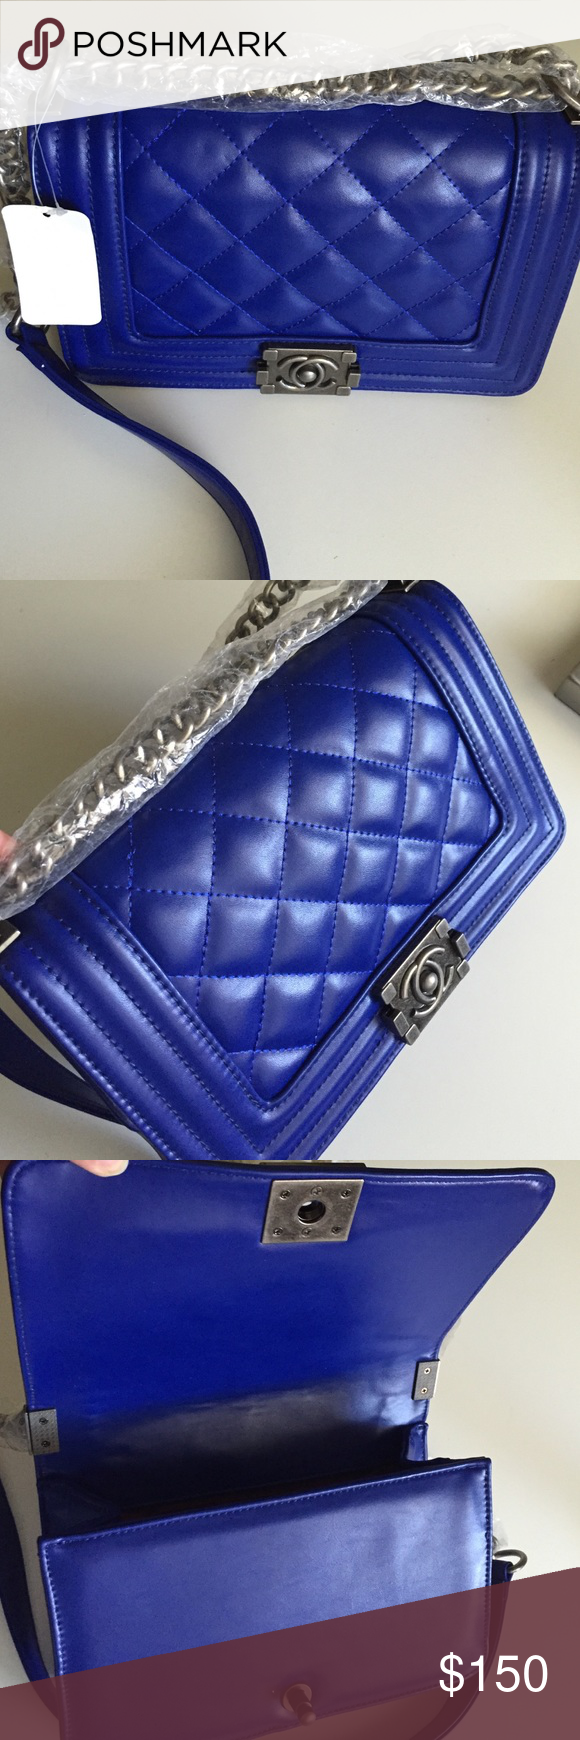 """Quilted bag - this bad boy is gorgeous! NWT NWT Quilted bag - Electric Blue - Boy this is beautiful! Gunmetal chain strap and hardware. Faux leather/Vegan - 10""""x7"""" brand new Bags Shoulder Bags"""